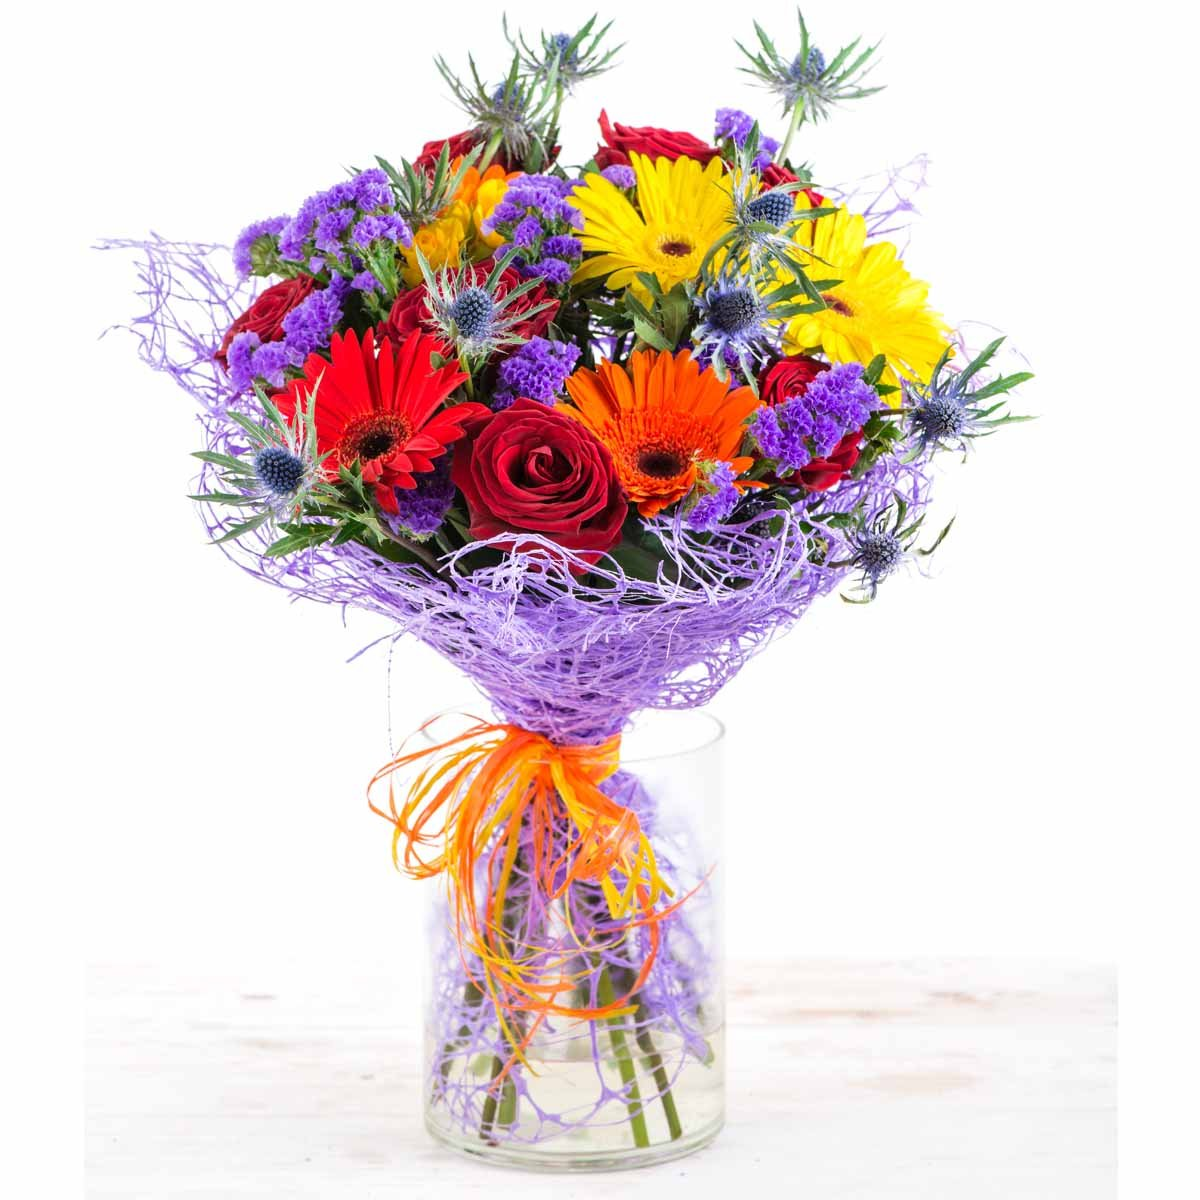 Flower Gifts Exotic Eden Mixed Floral Bouquet Enduring Roses